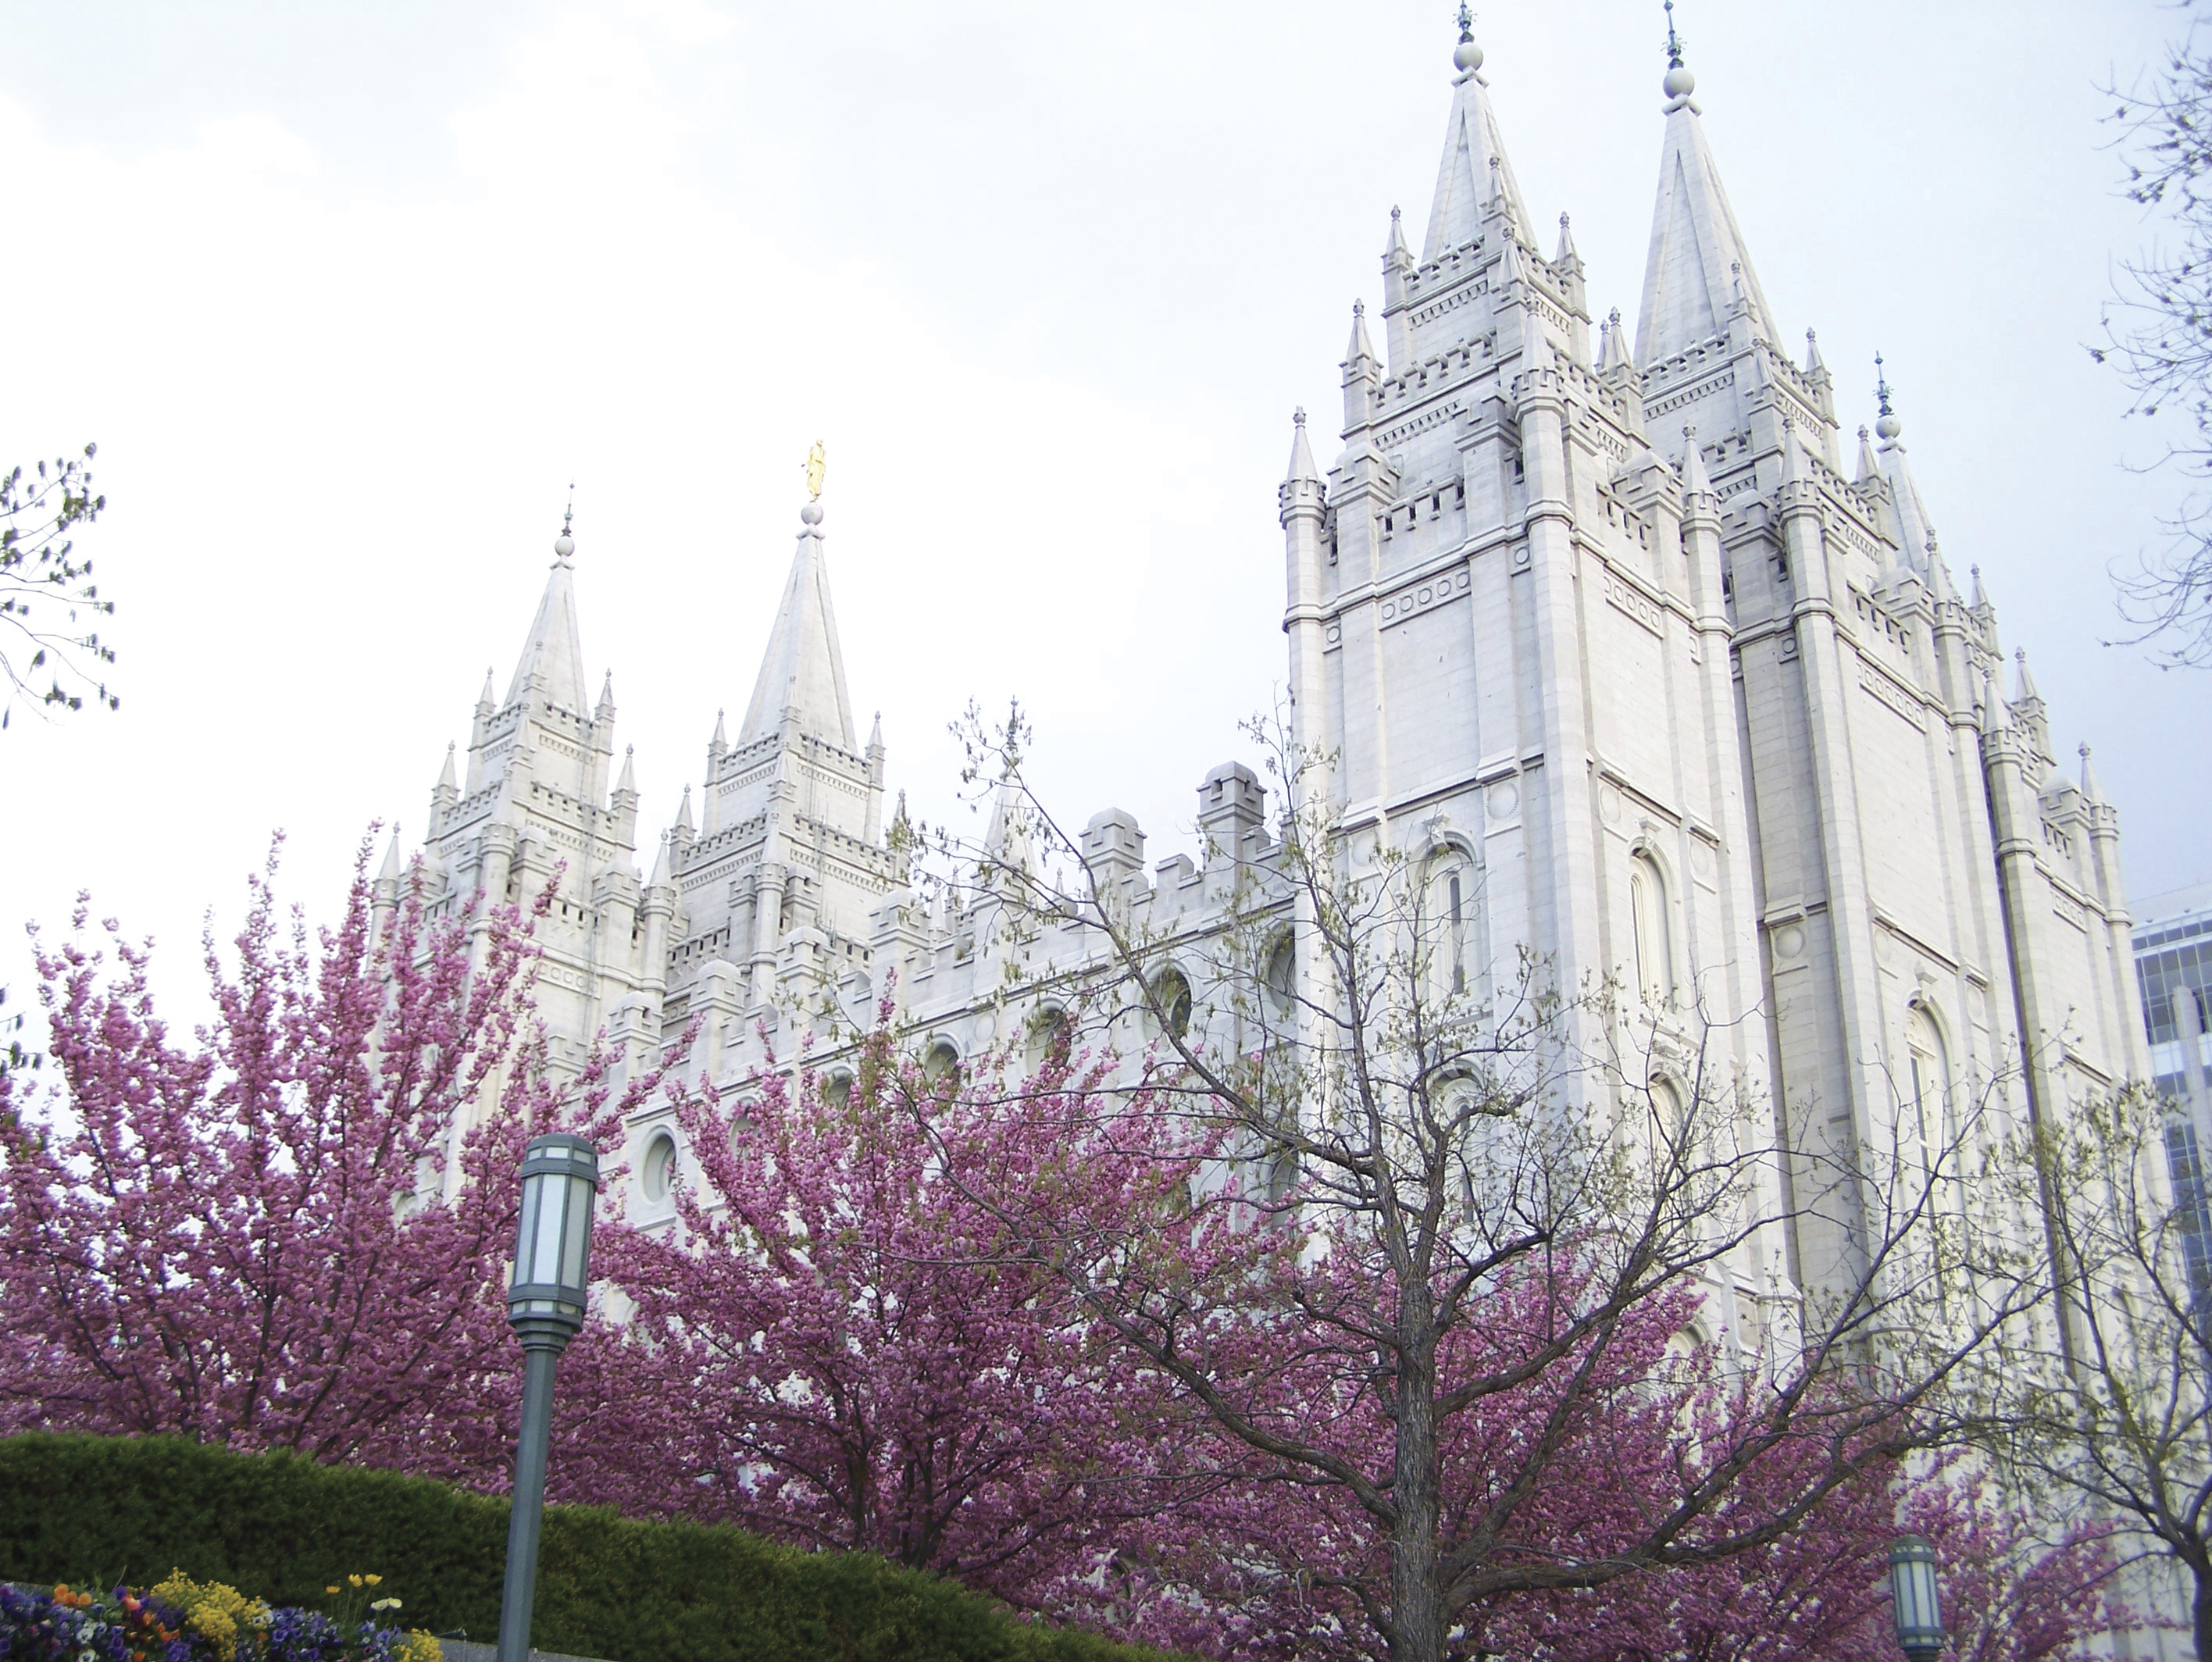 The Salt Lake Temple north view, including scenery.